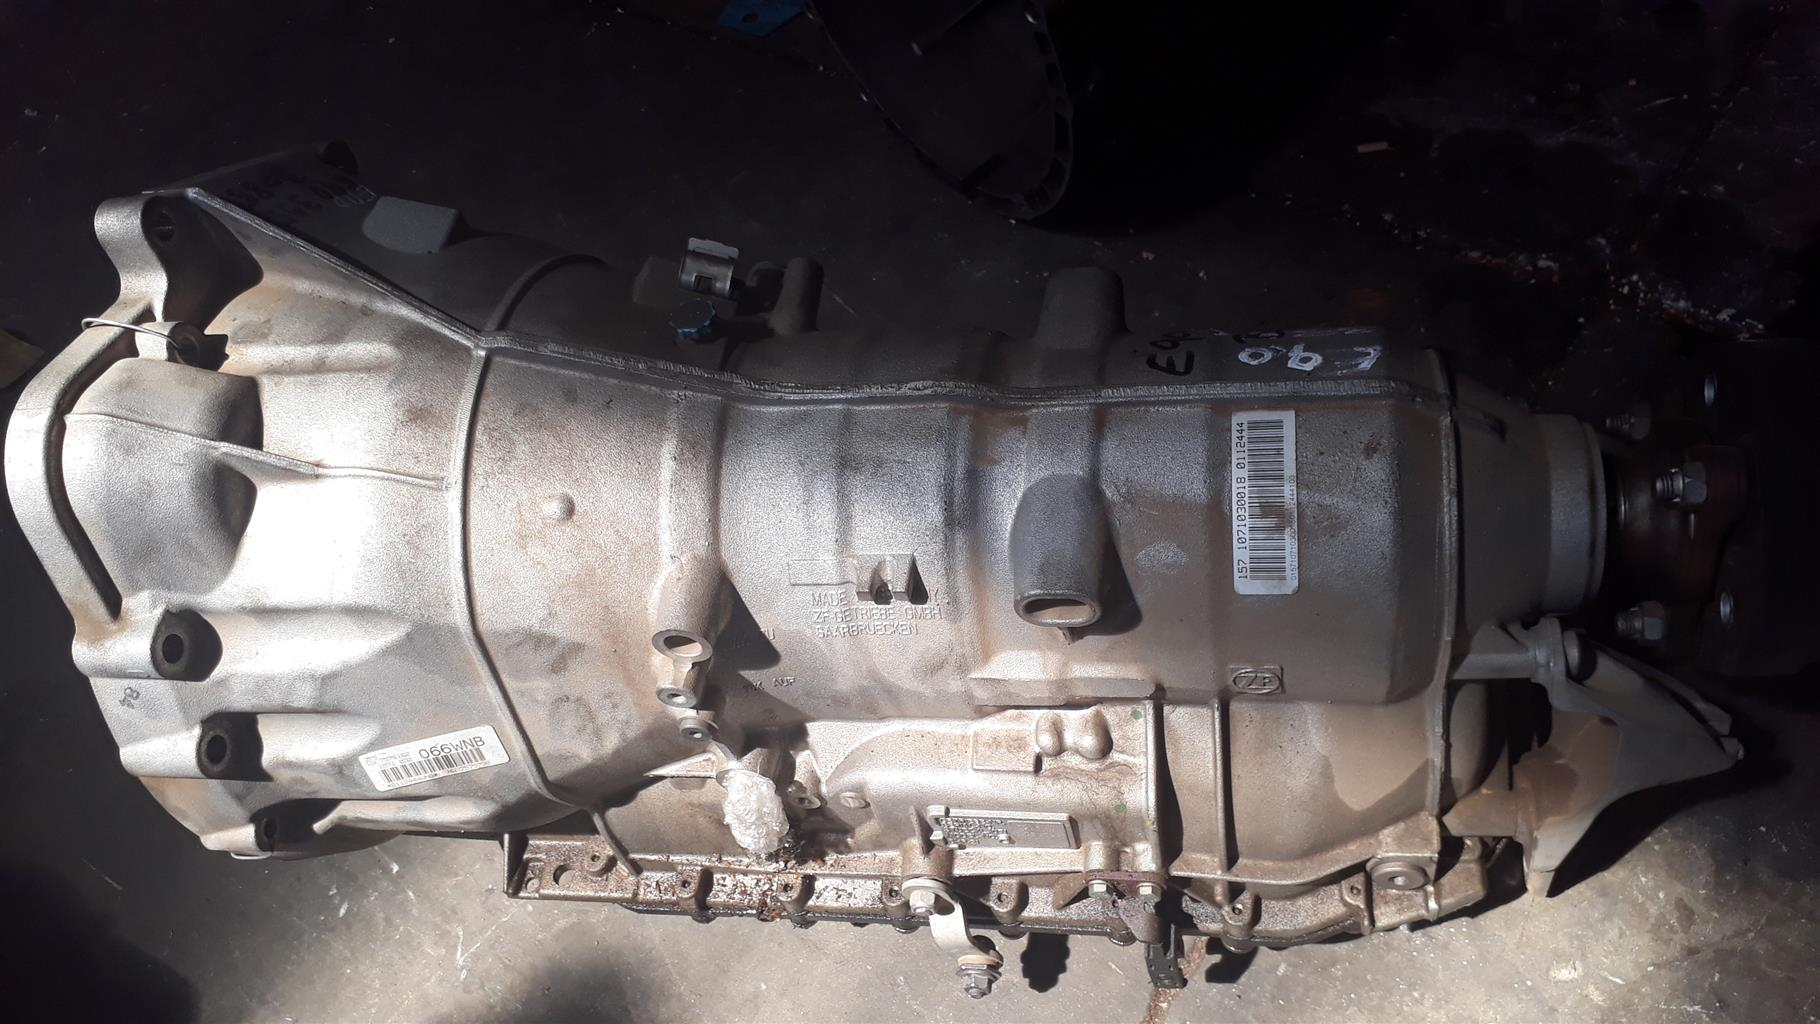 BMW 6HP21 GEARBOX FOR SALE